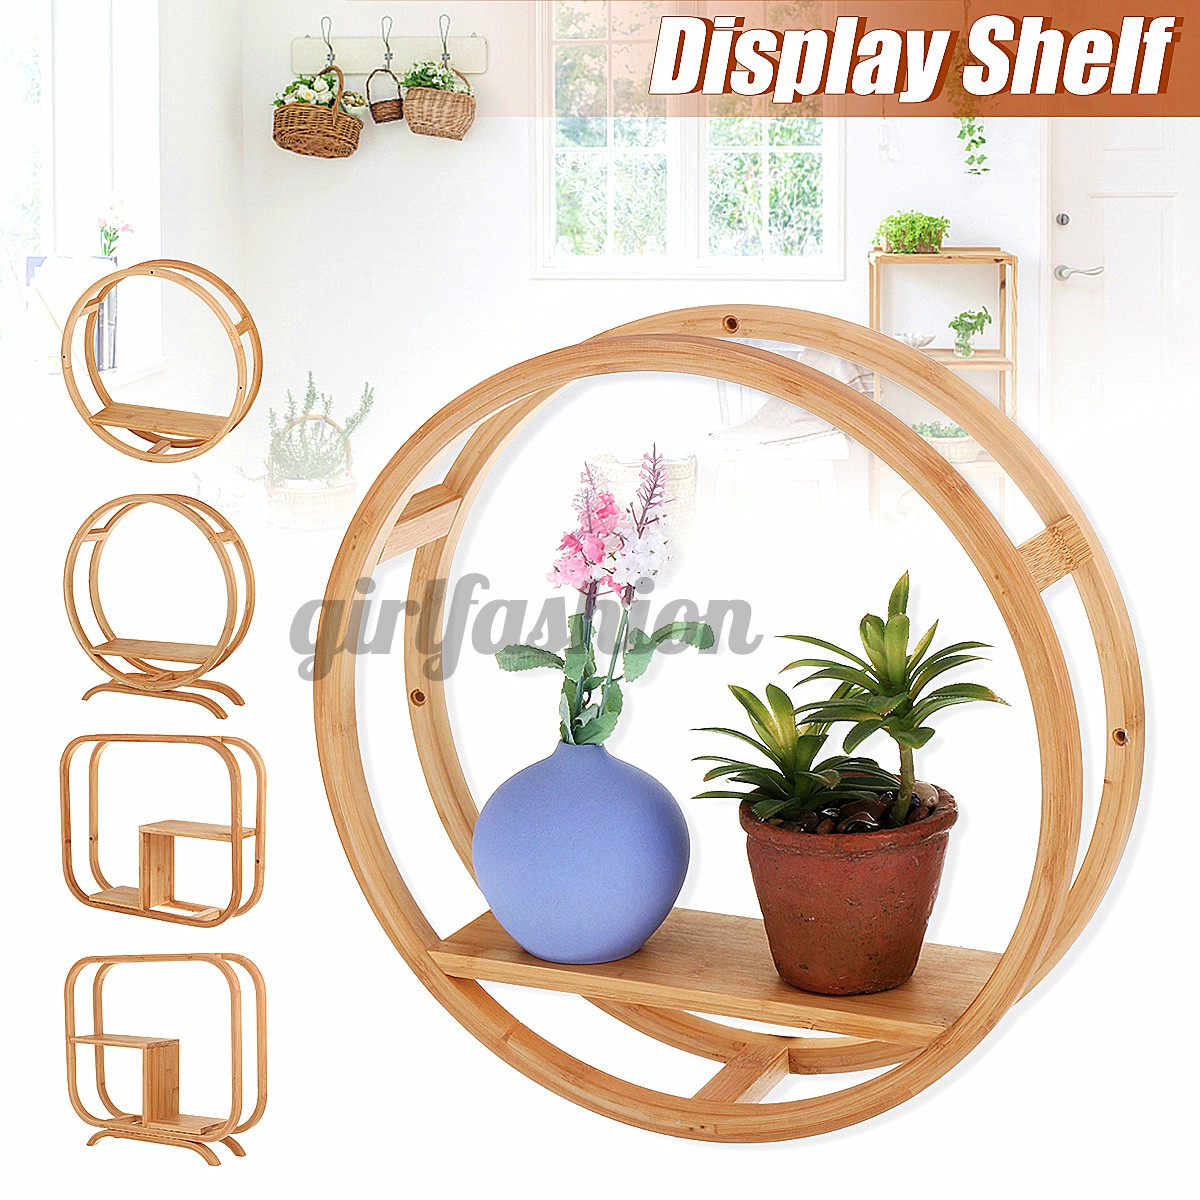 Wooden Round Square Wall Shelf Unique Home Decor Shabby Chic Circle Display Unit Nanzhu Xiaobo Ancient Frame Chinese Wall Shelves Desktop Frame Shopee Singapore